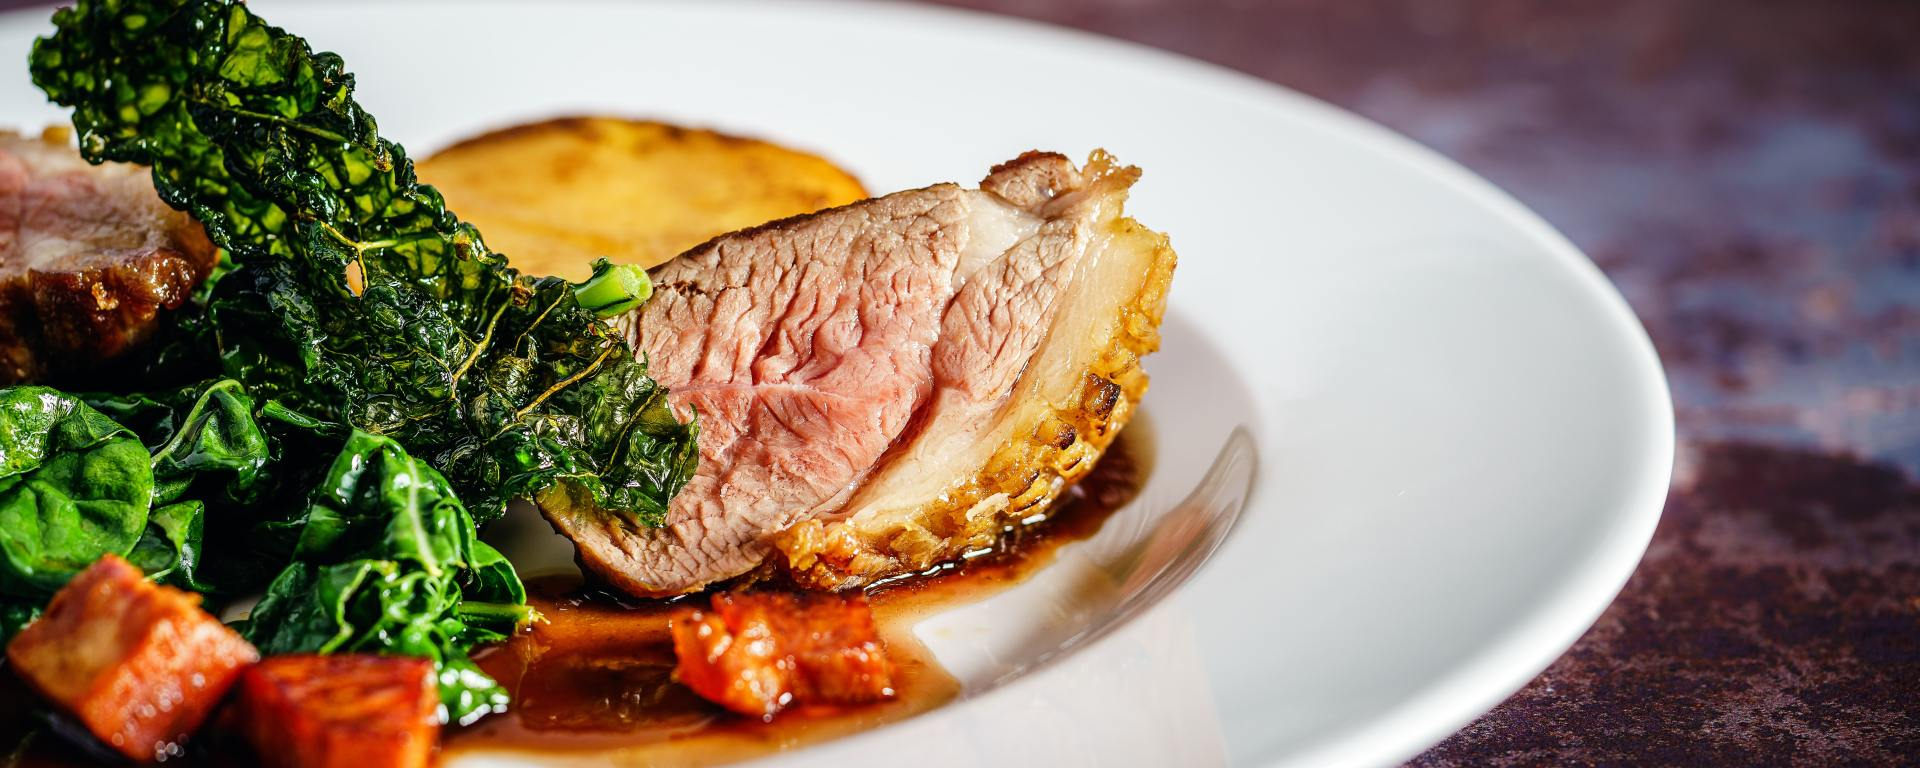 Southampton's best sunday lunches